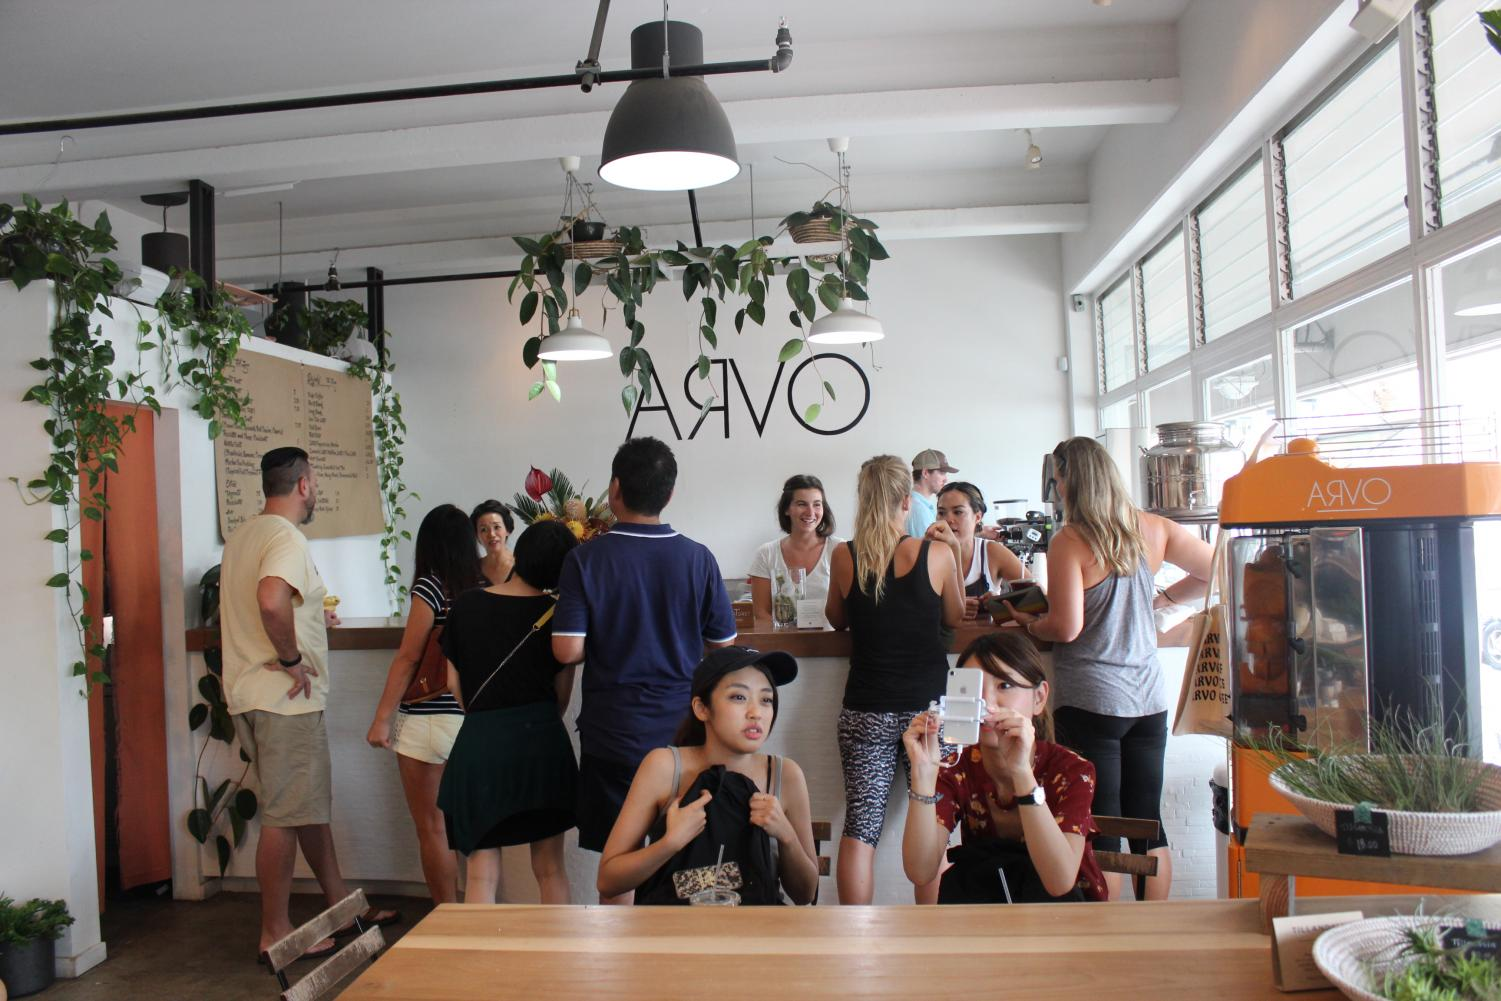 Arvo Cafe attracts both locals and visitors to its Kakaako location. Photo by Grace Kim.